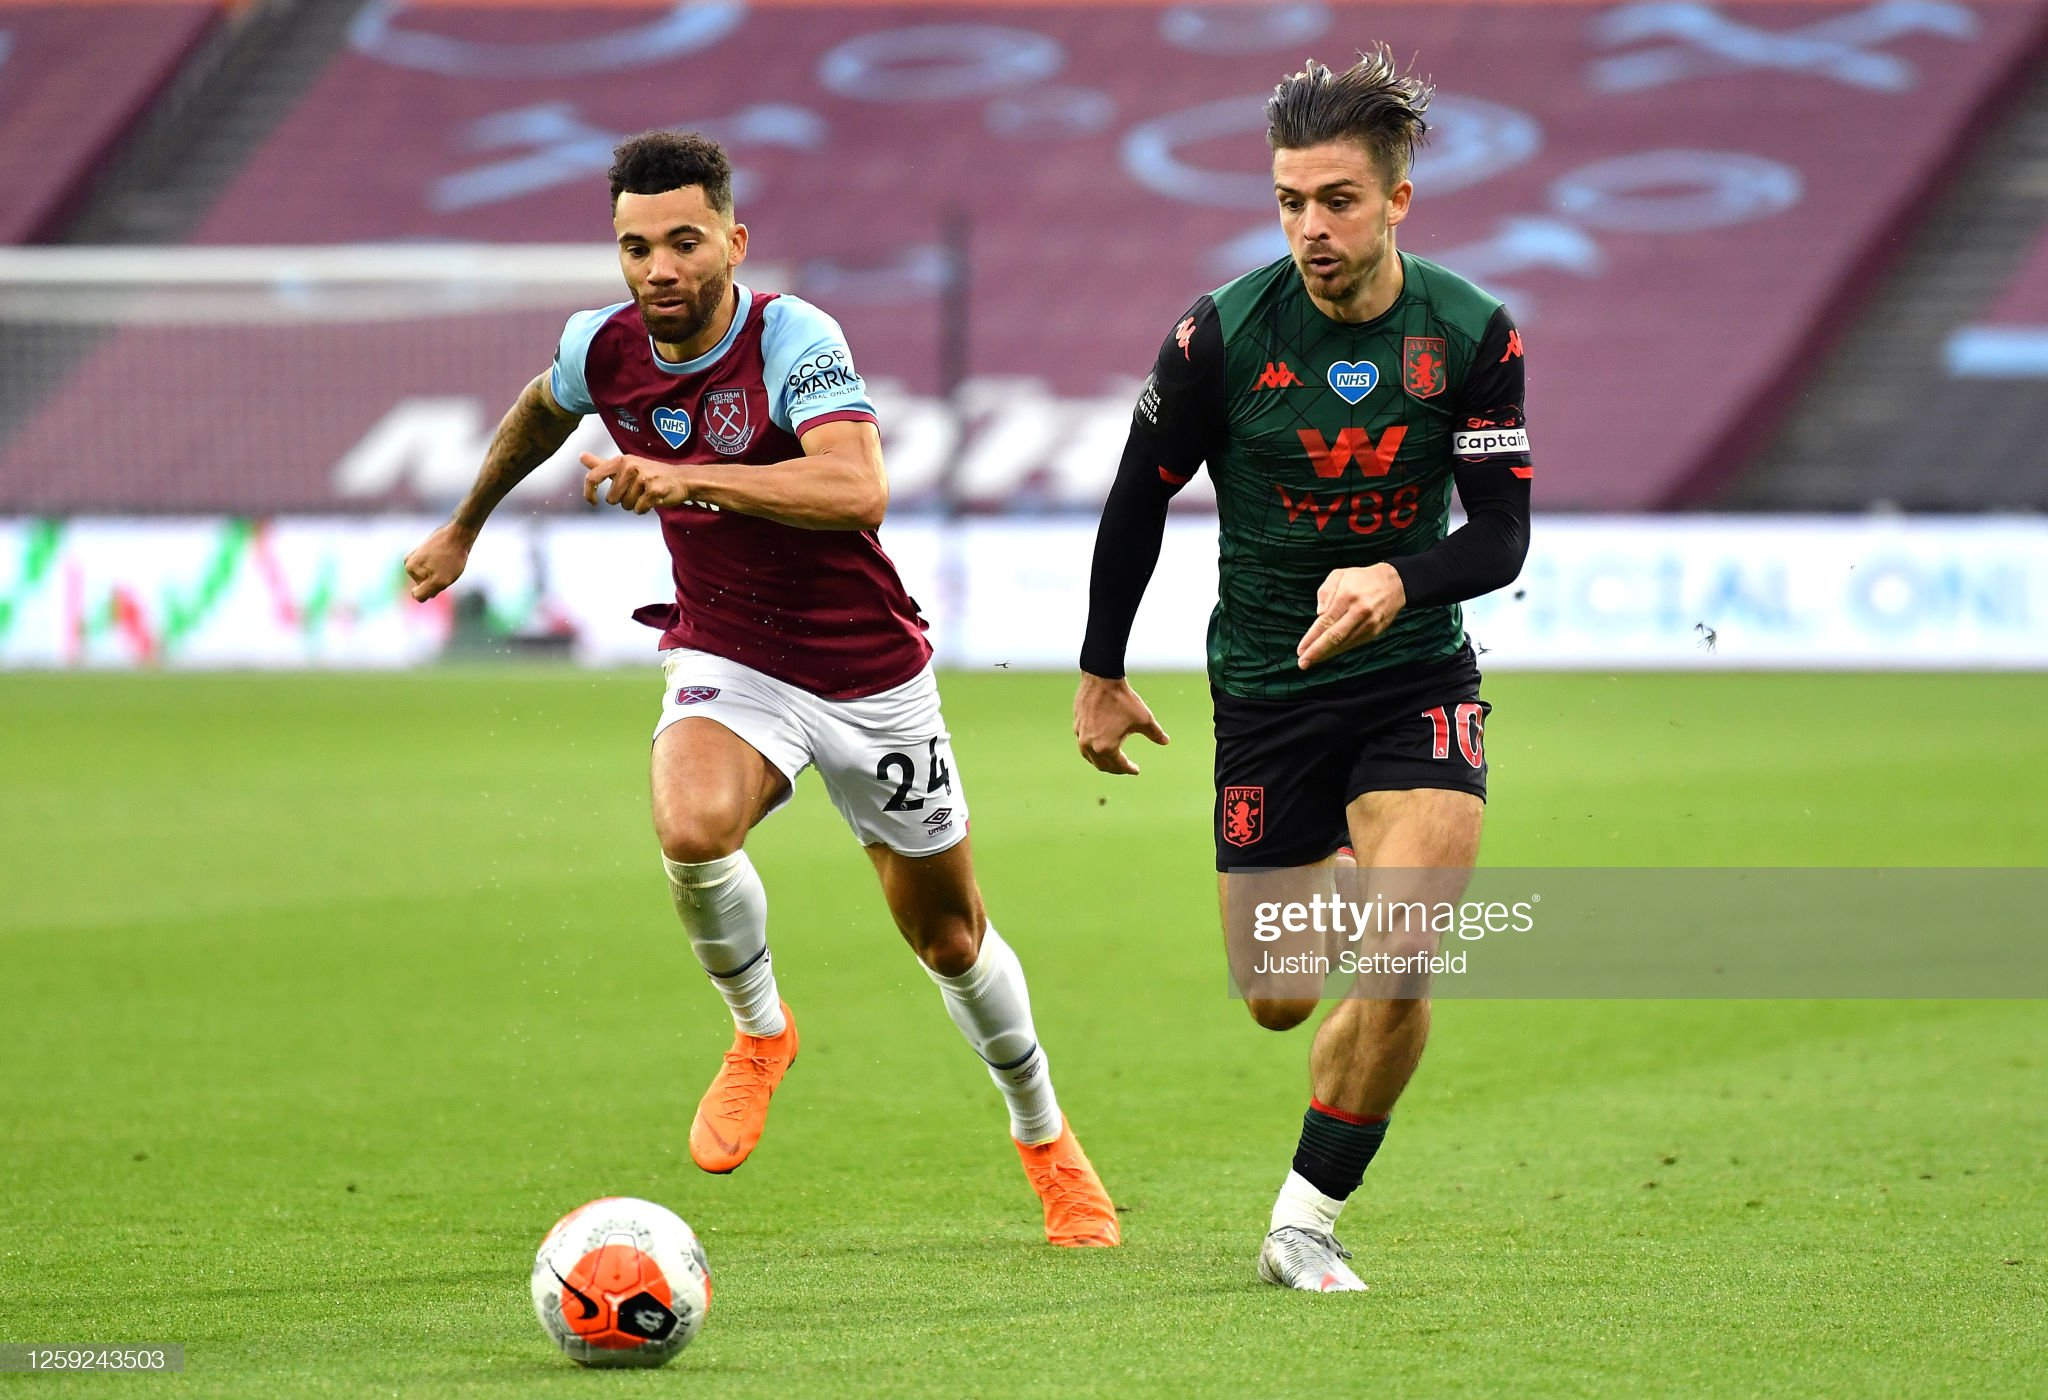 West Ham vs Aston Villa preview, prediction and odds